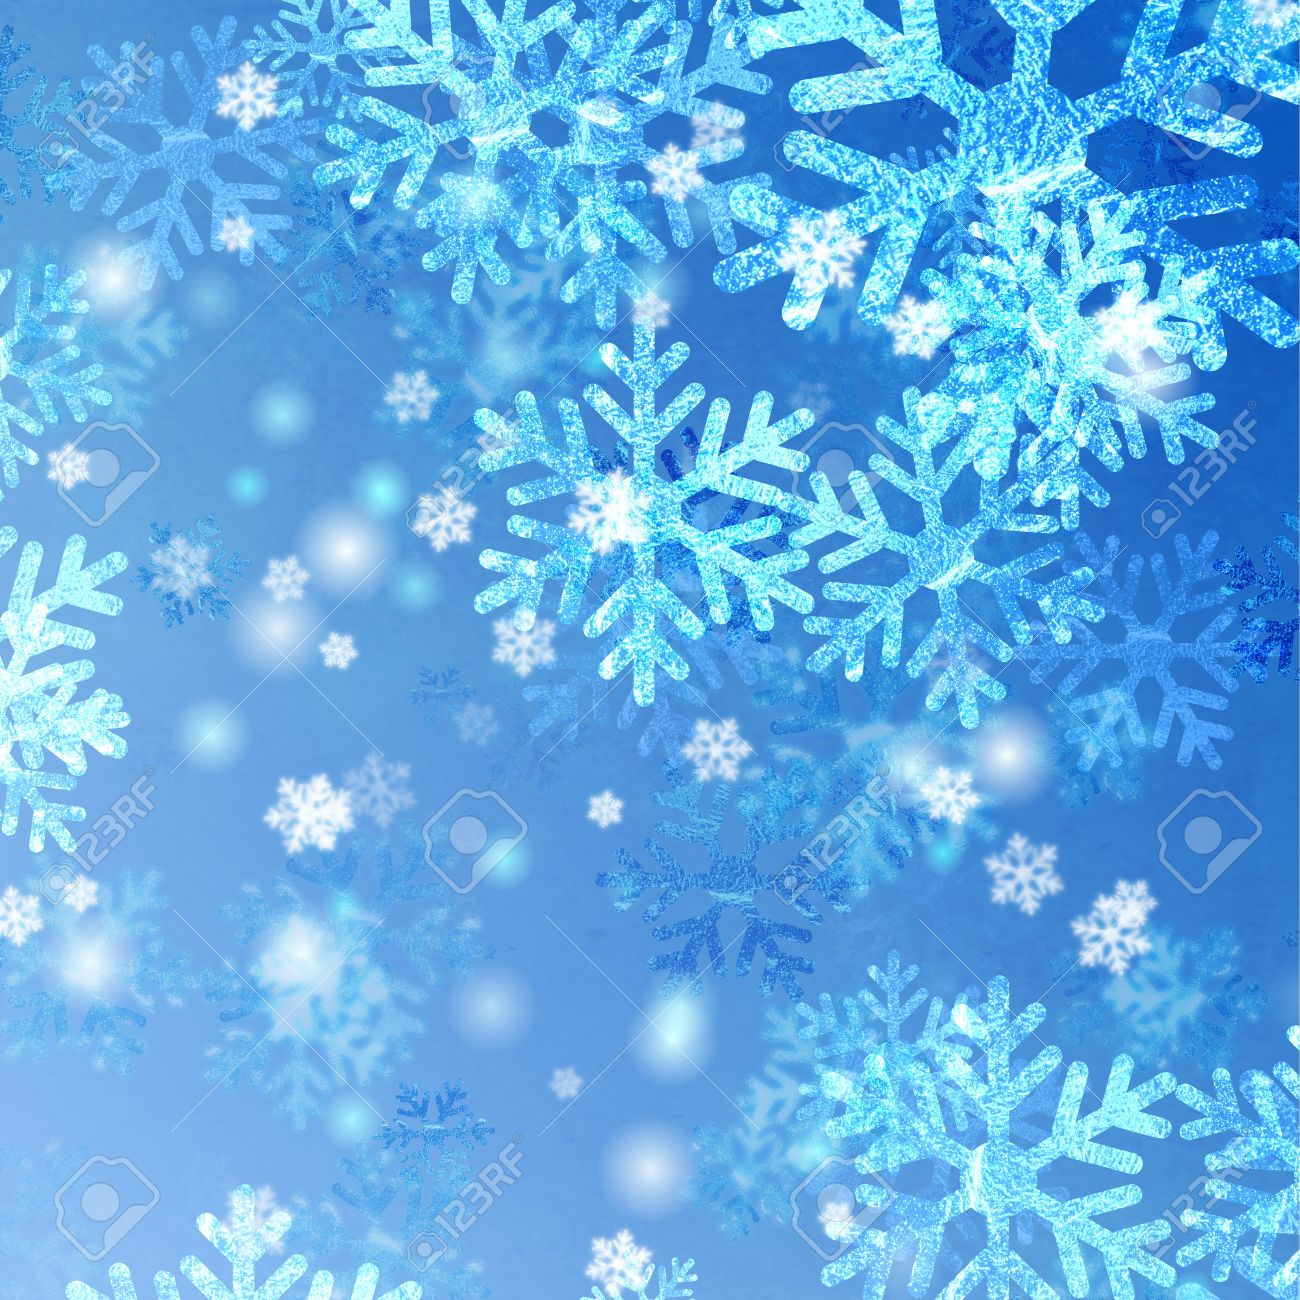 blue and white snowflakes over azure background